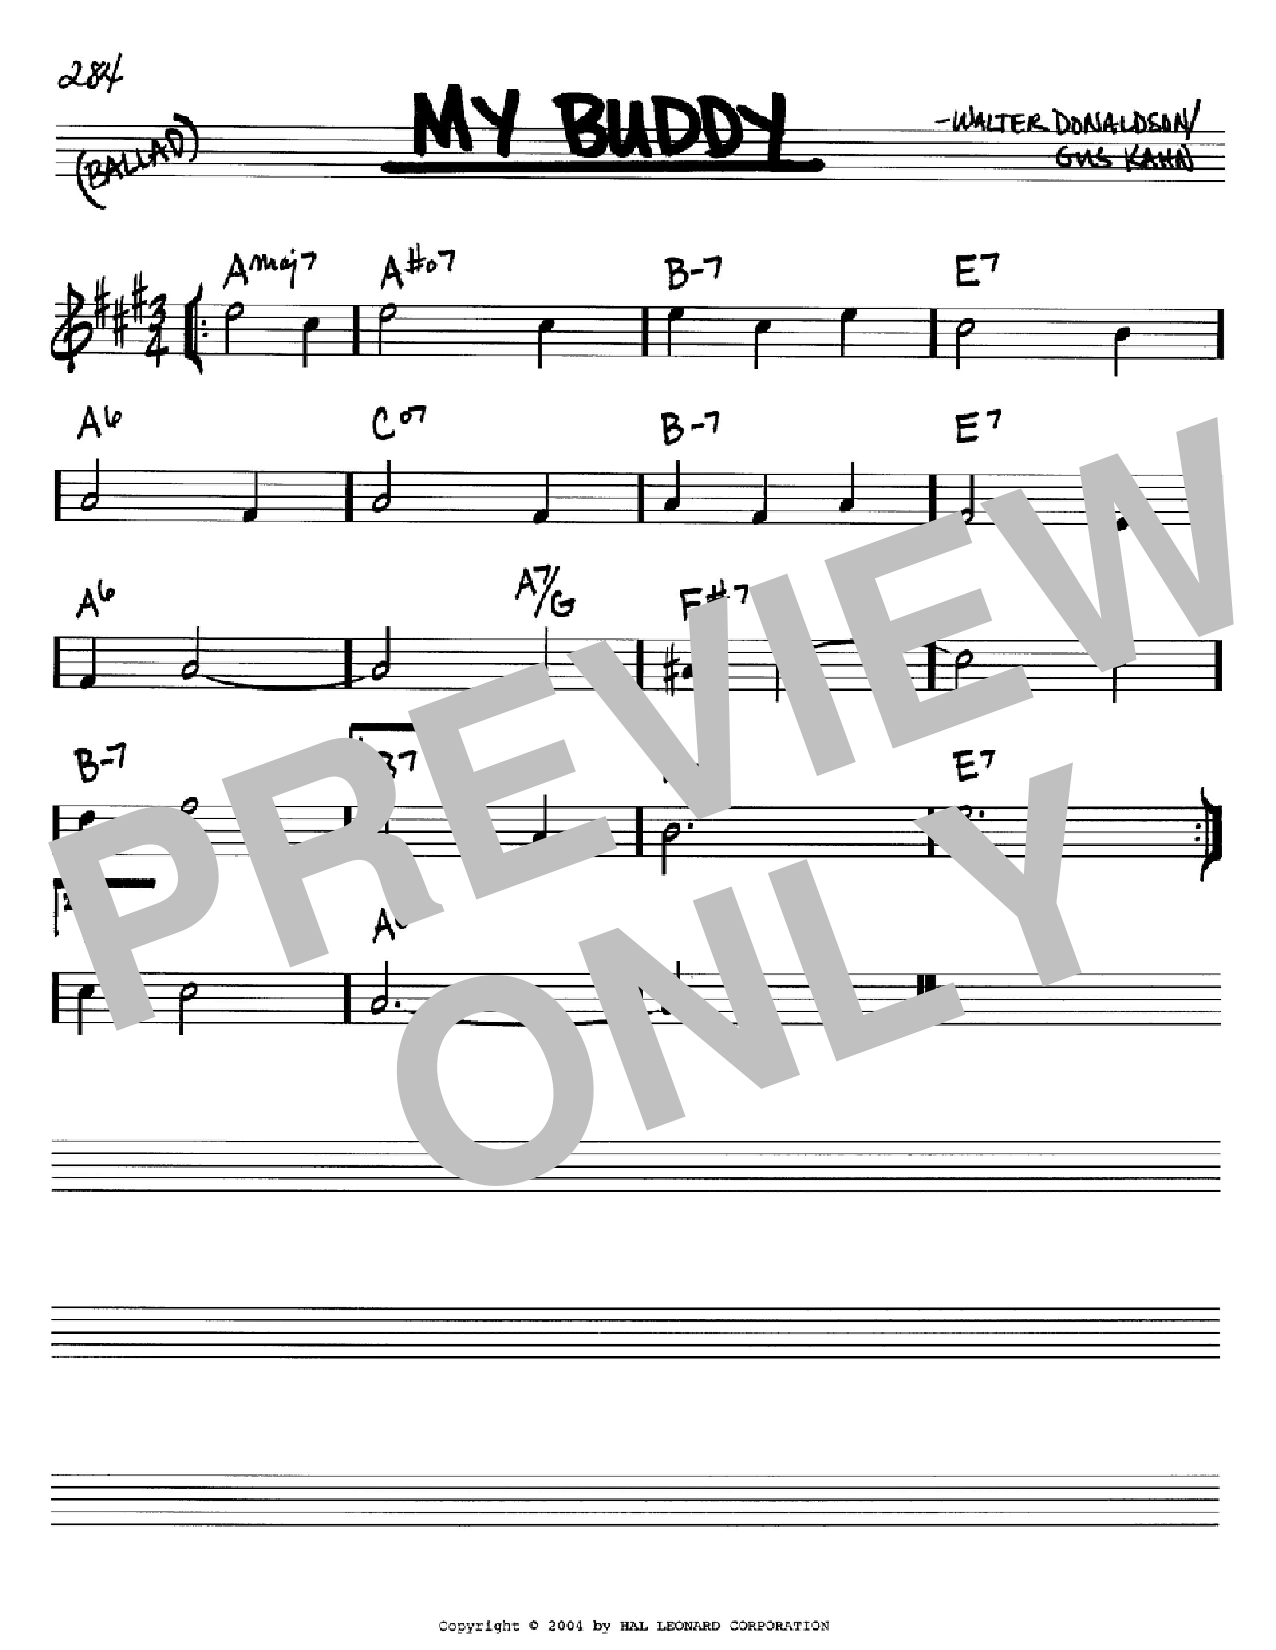 My Buddy Sheet Music